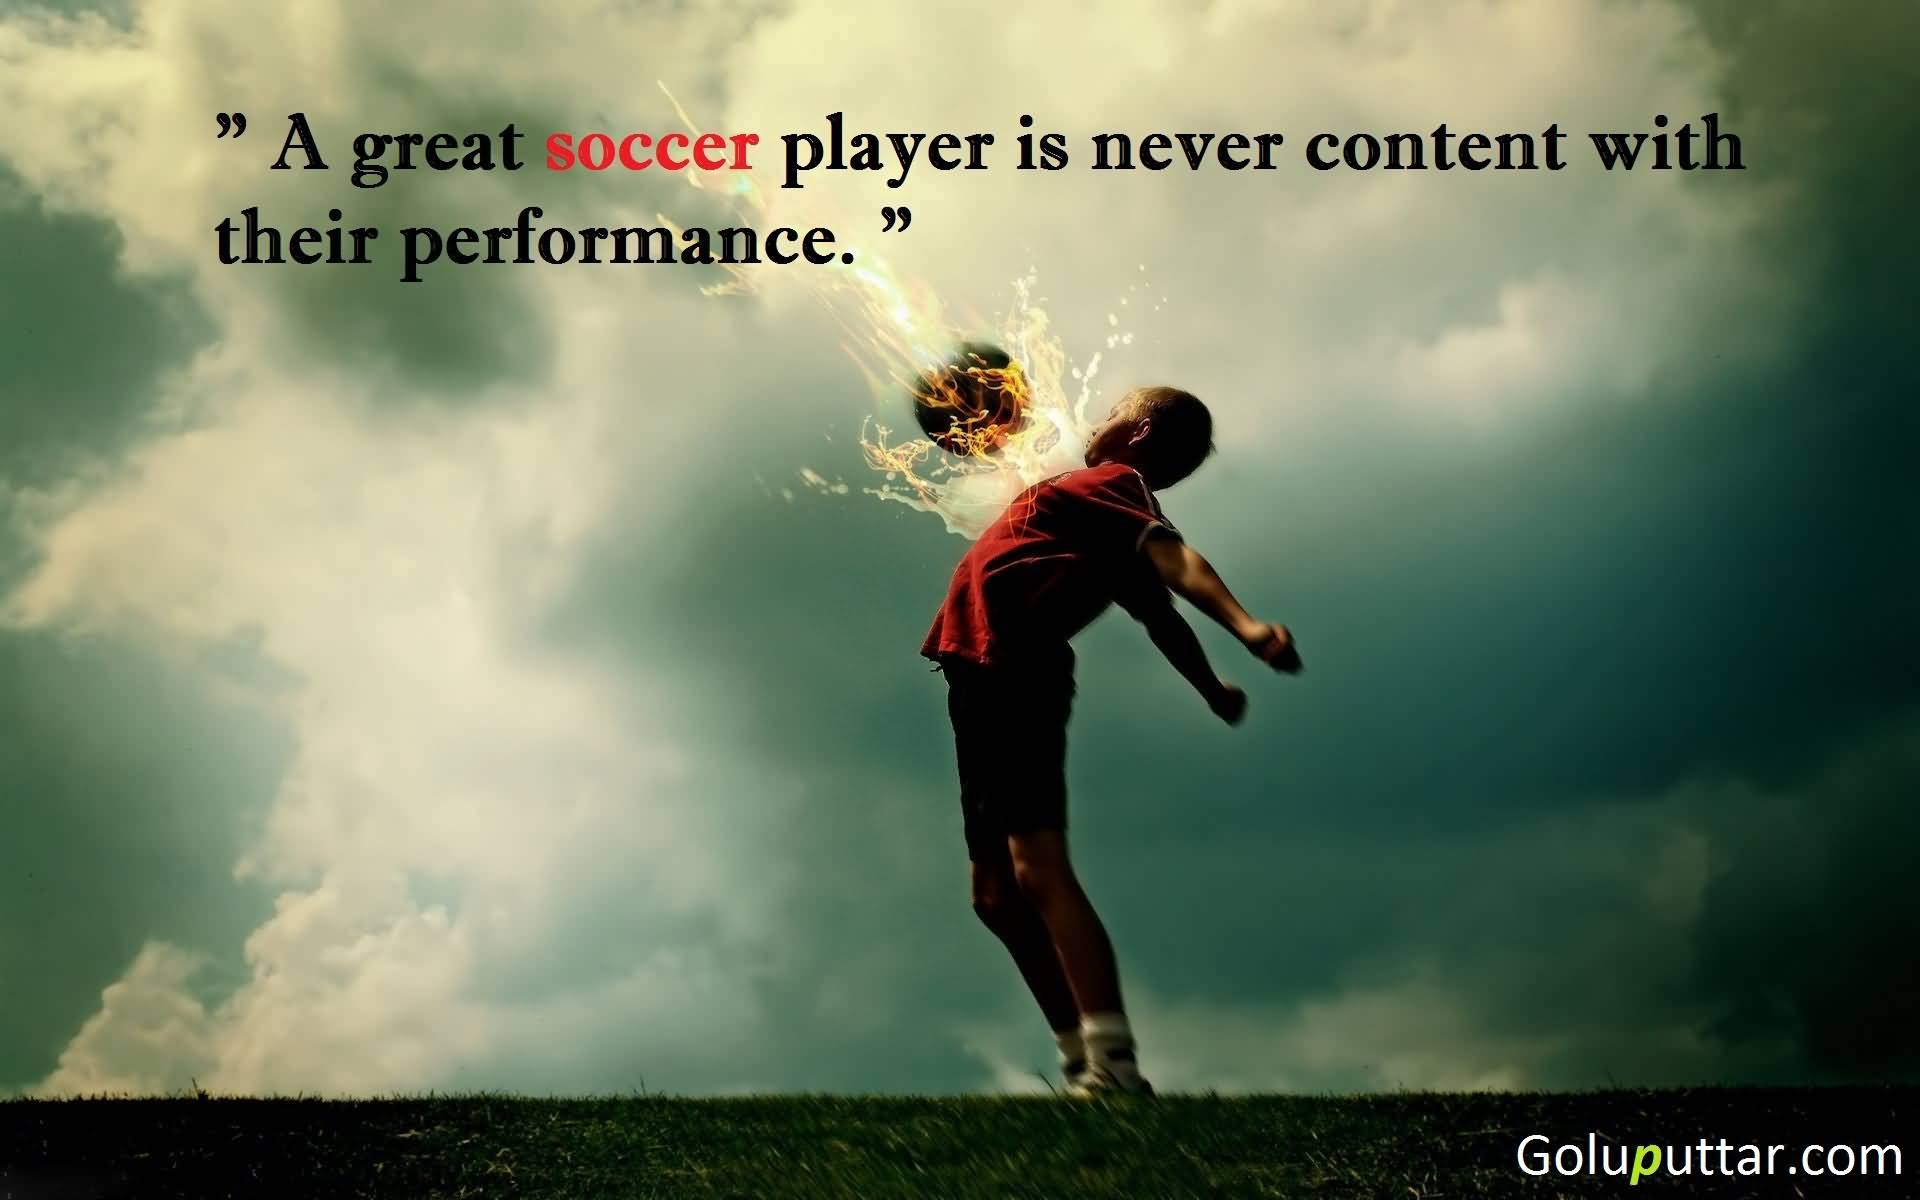 Soccer Quote Unique Famous Soccer Quote About Great Soccer Player  Goluputtar